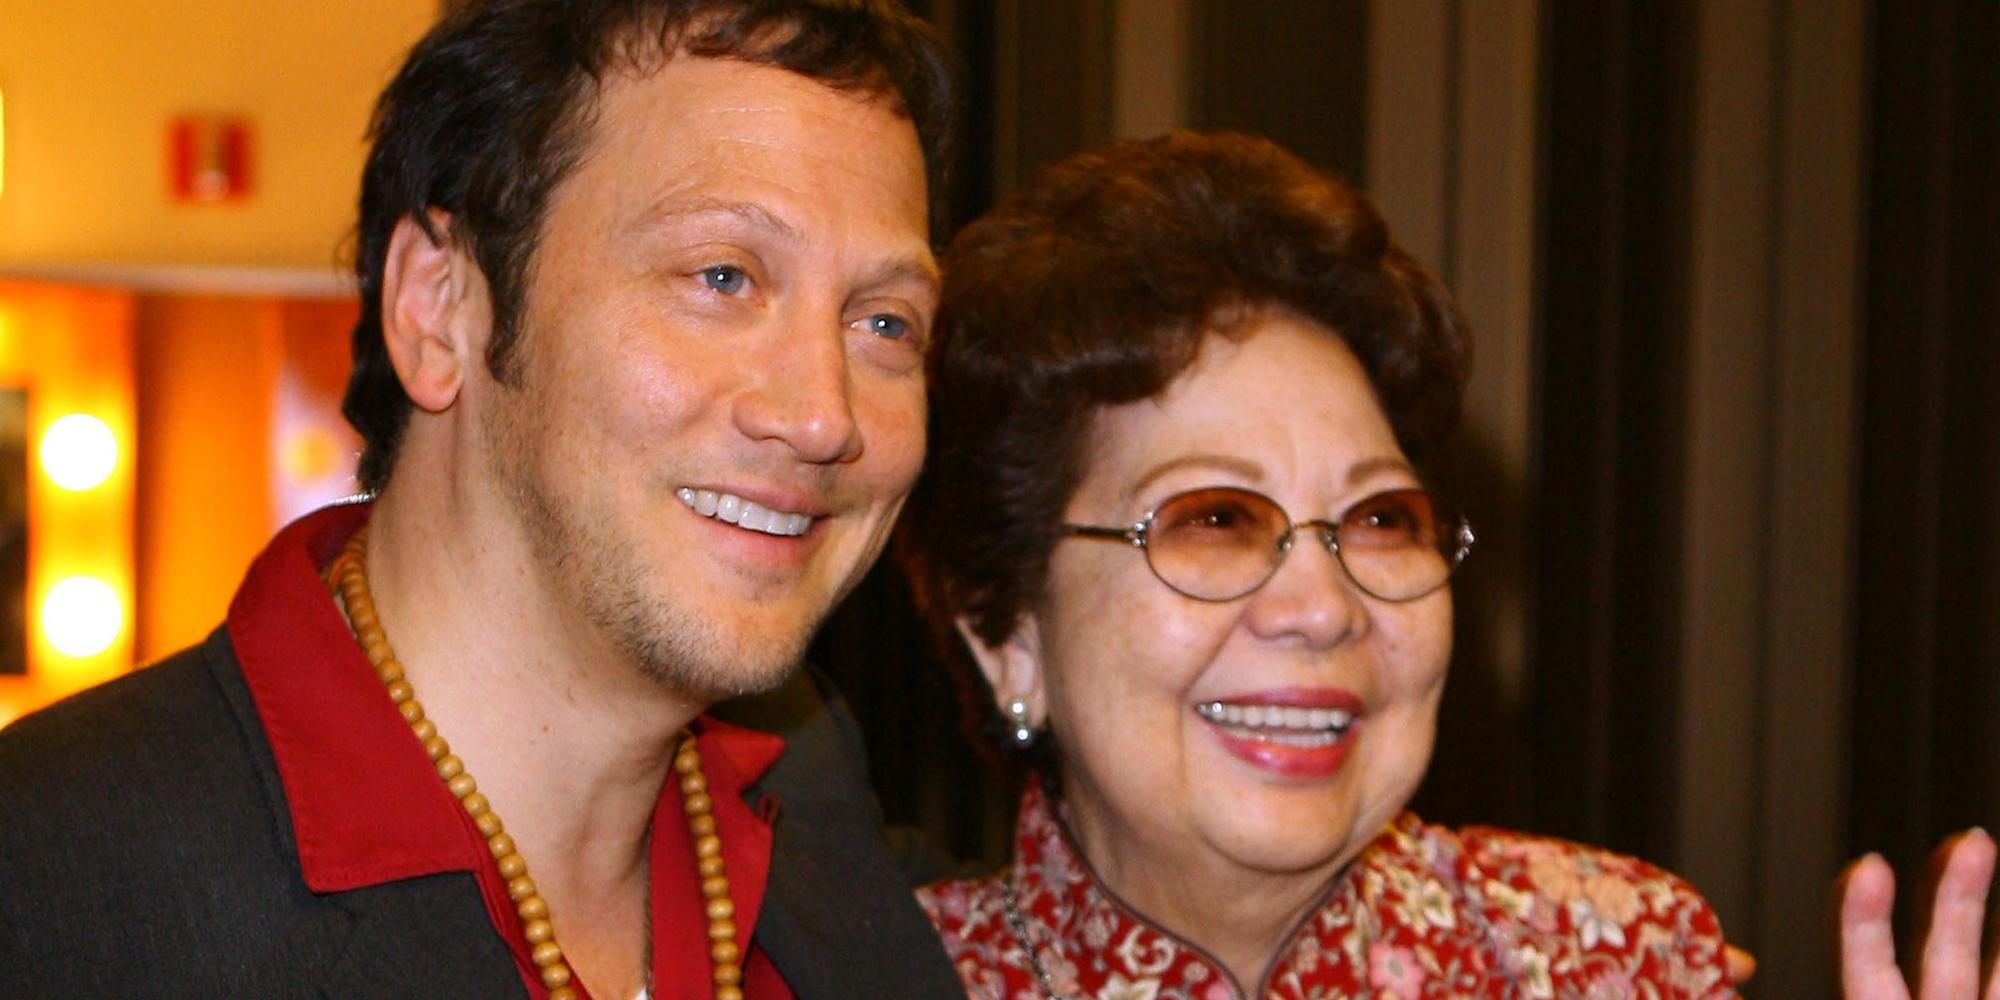 news.yahoo.com: Rob Schneider announces his mom, who appeared in his films, has died